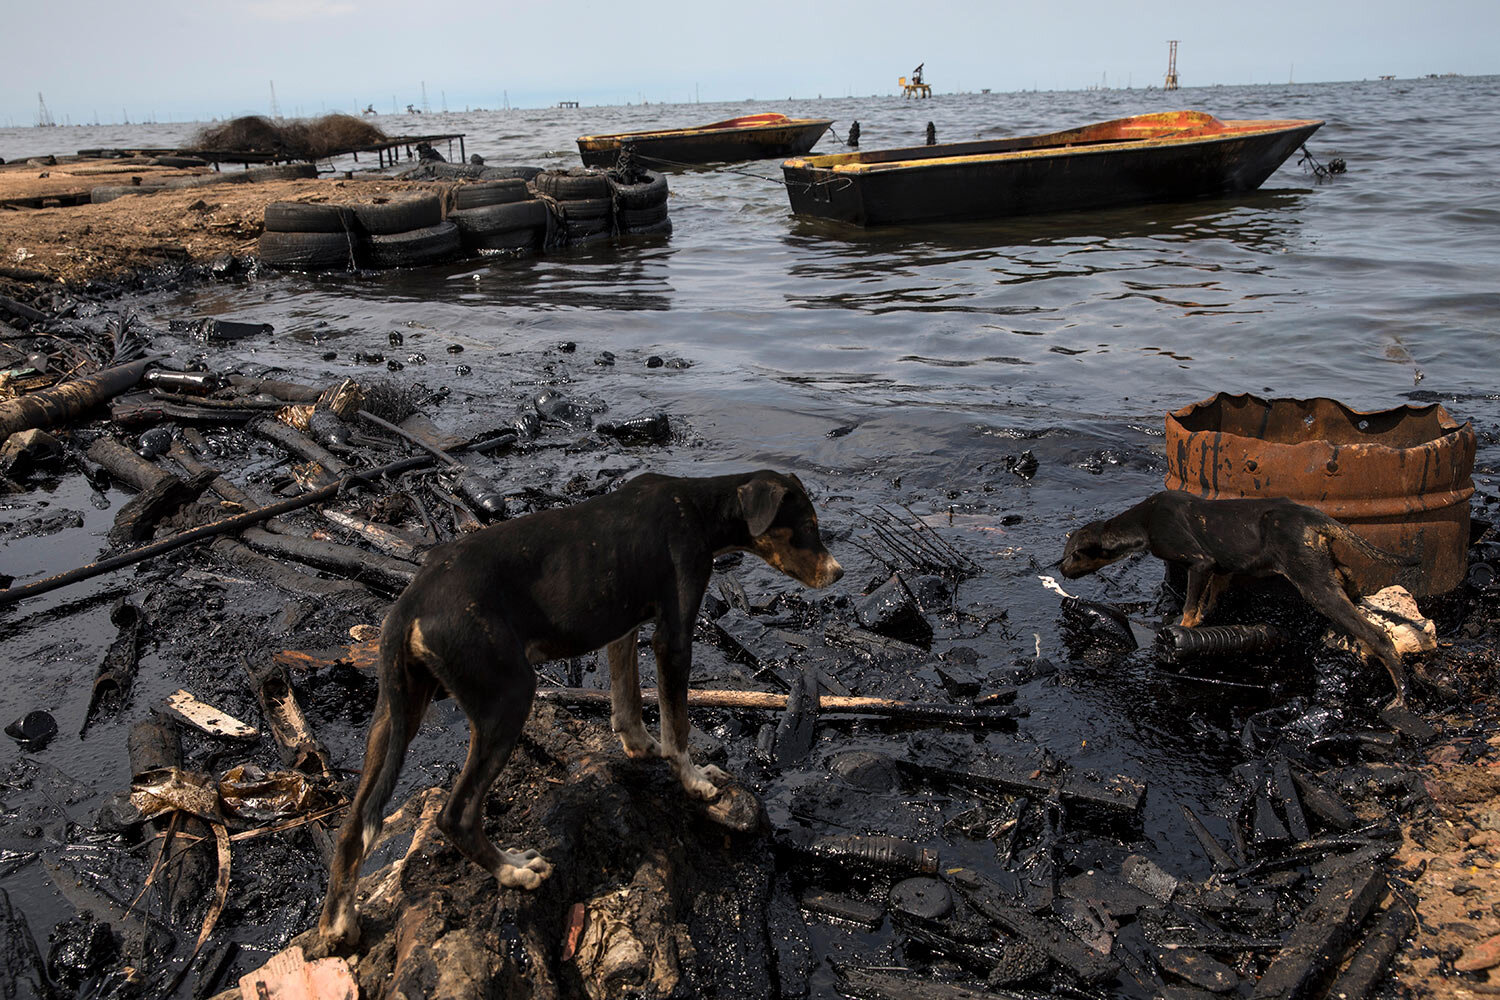 Dogs search for scraps of fish left behind by fishermen on the shore of Lake Maracaibo blacked by oil, near La Salina crude oil shipping terminal in Cabimas, Venezuela, May 24, 2019. (AP Photo/Rodrigo Abd)